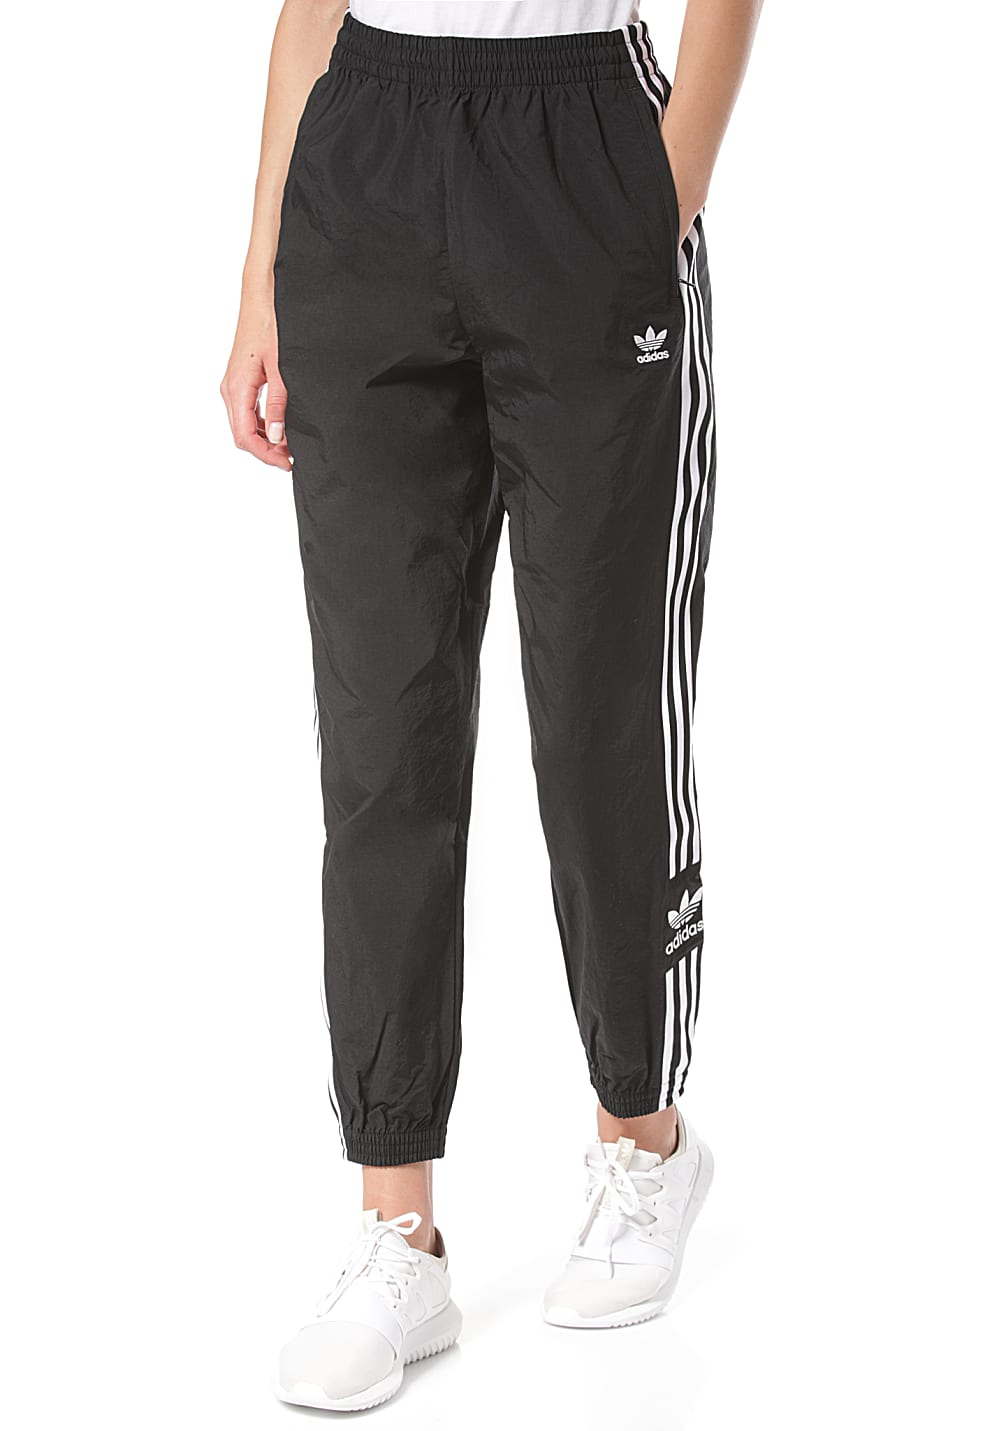 Women Up Trackpants Lock For Adidas Originals Black oedCxB